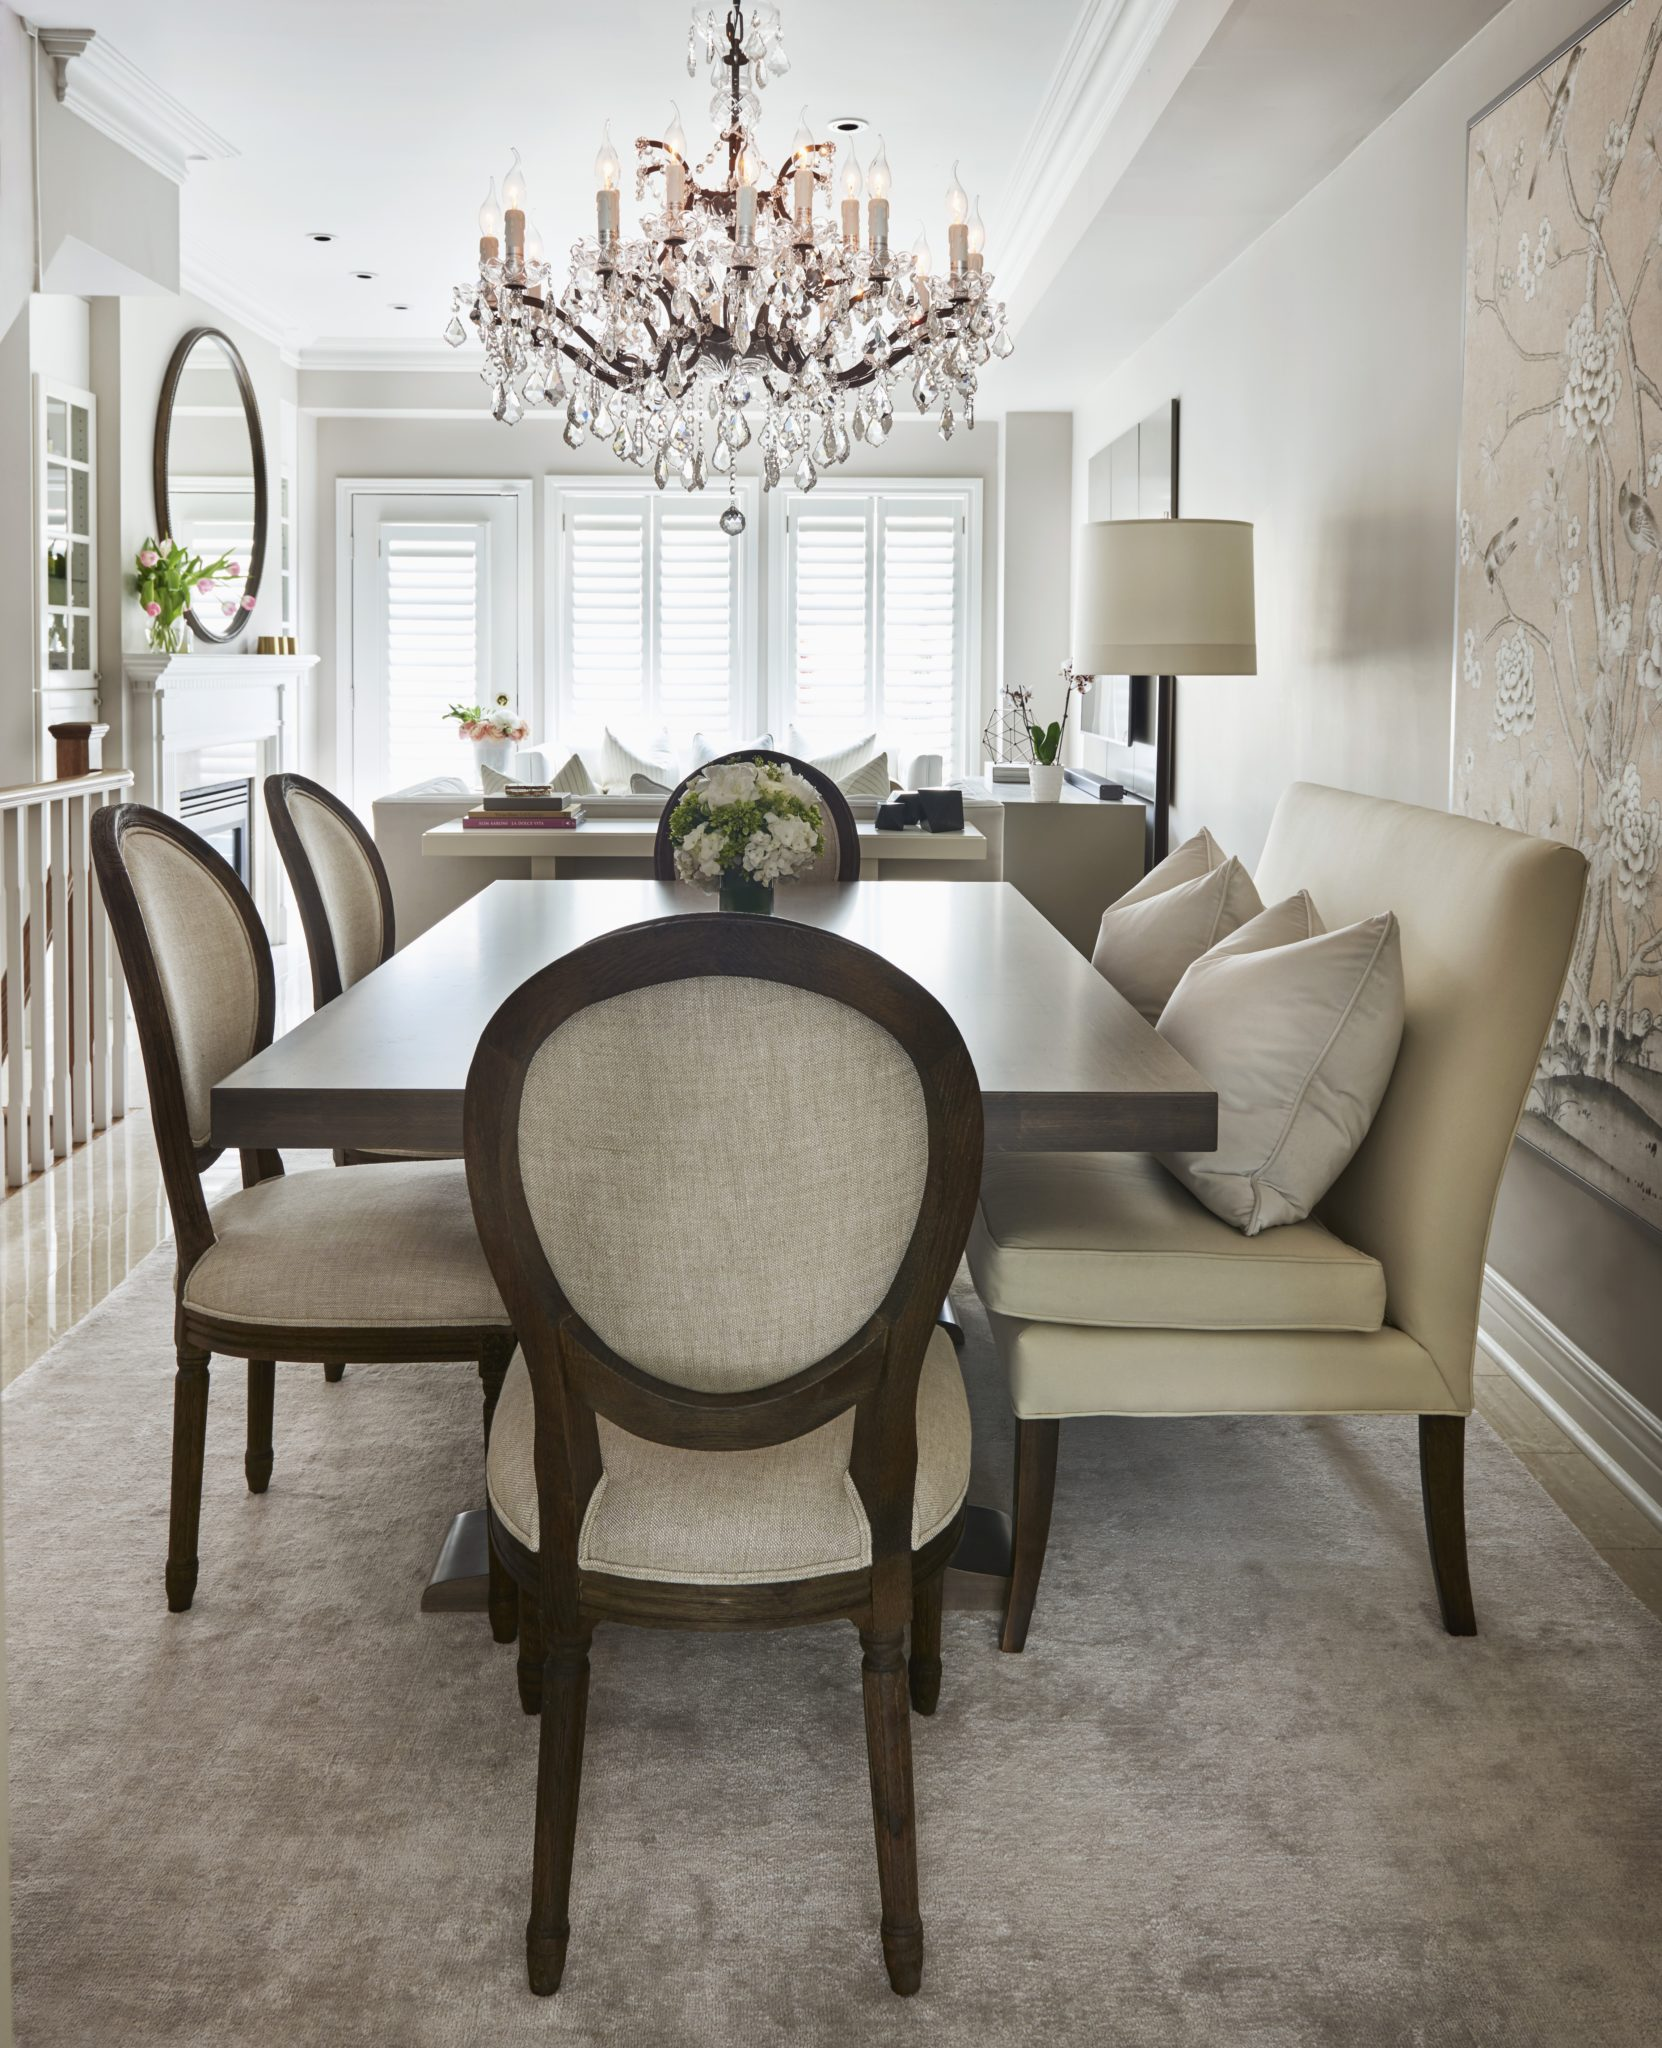 Grand Harbour residence - living and dining room open concept floor plan by Alyssa Colagiacomo Interiors